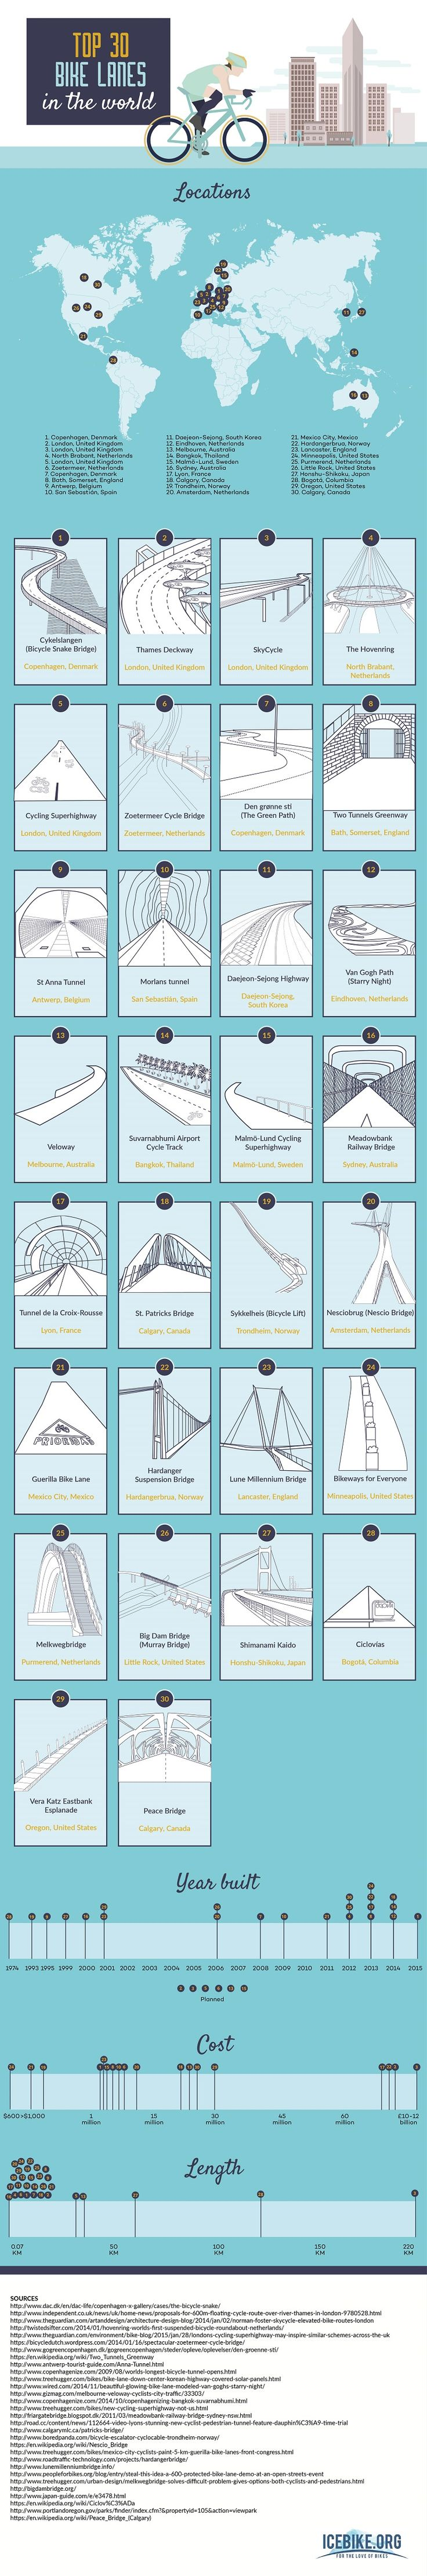 Top 30 Bike Lanes in the World #infographic #Travel #Transportation